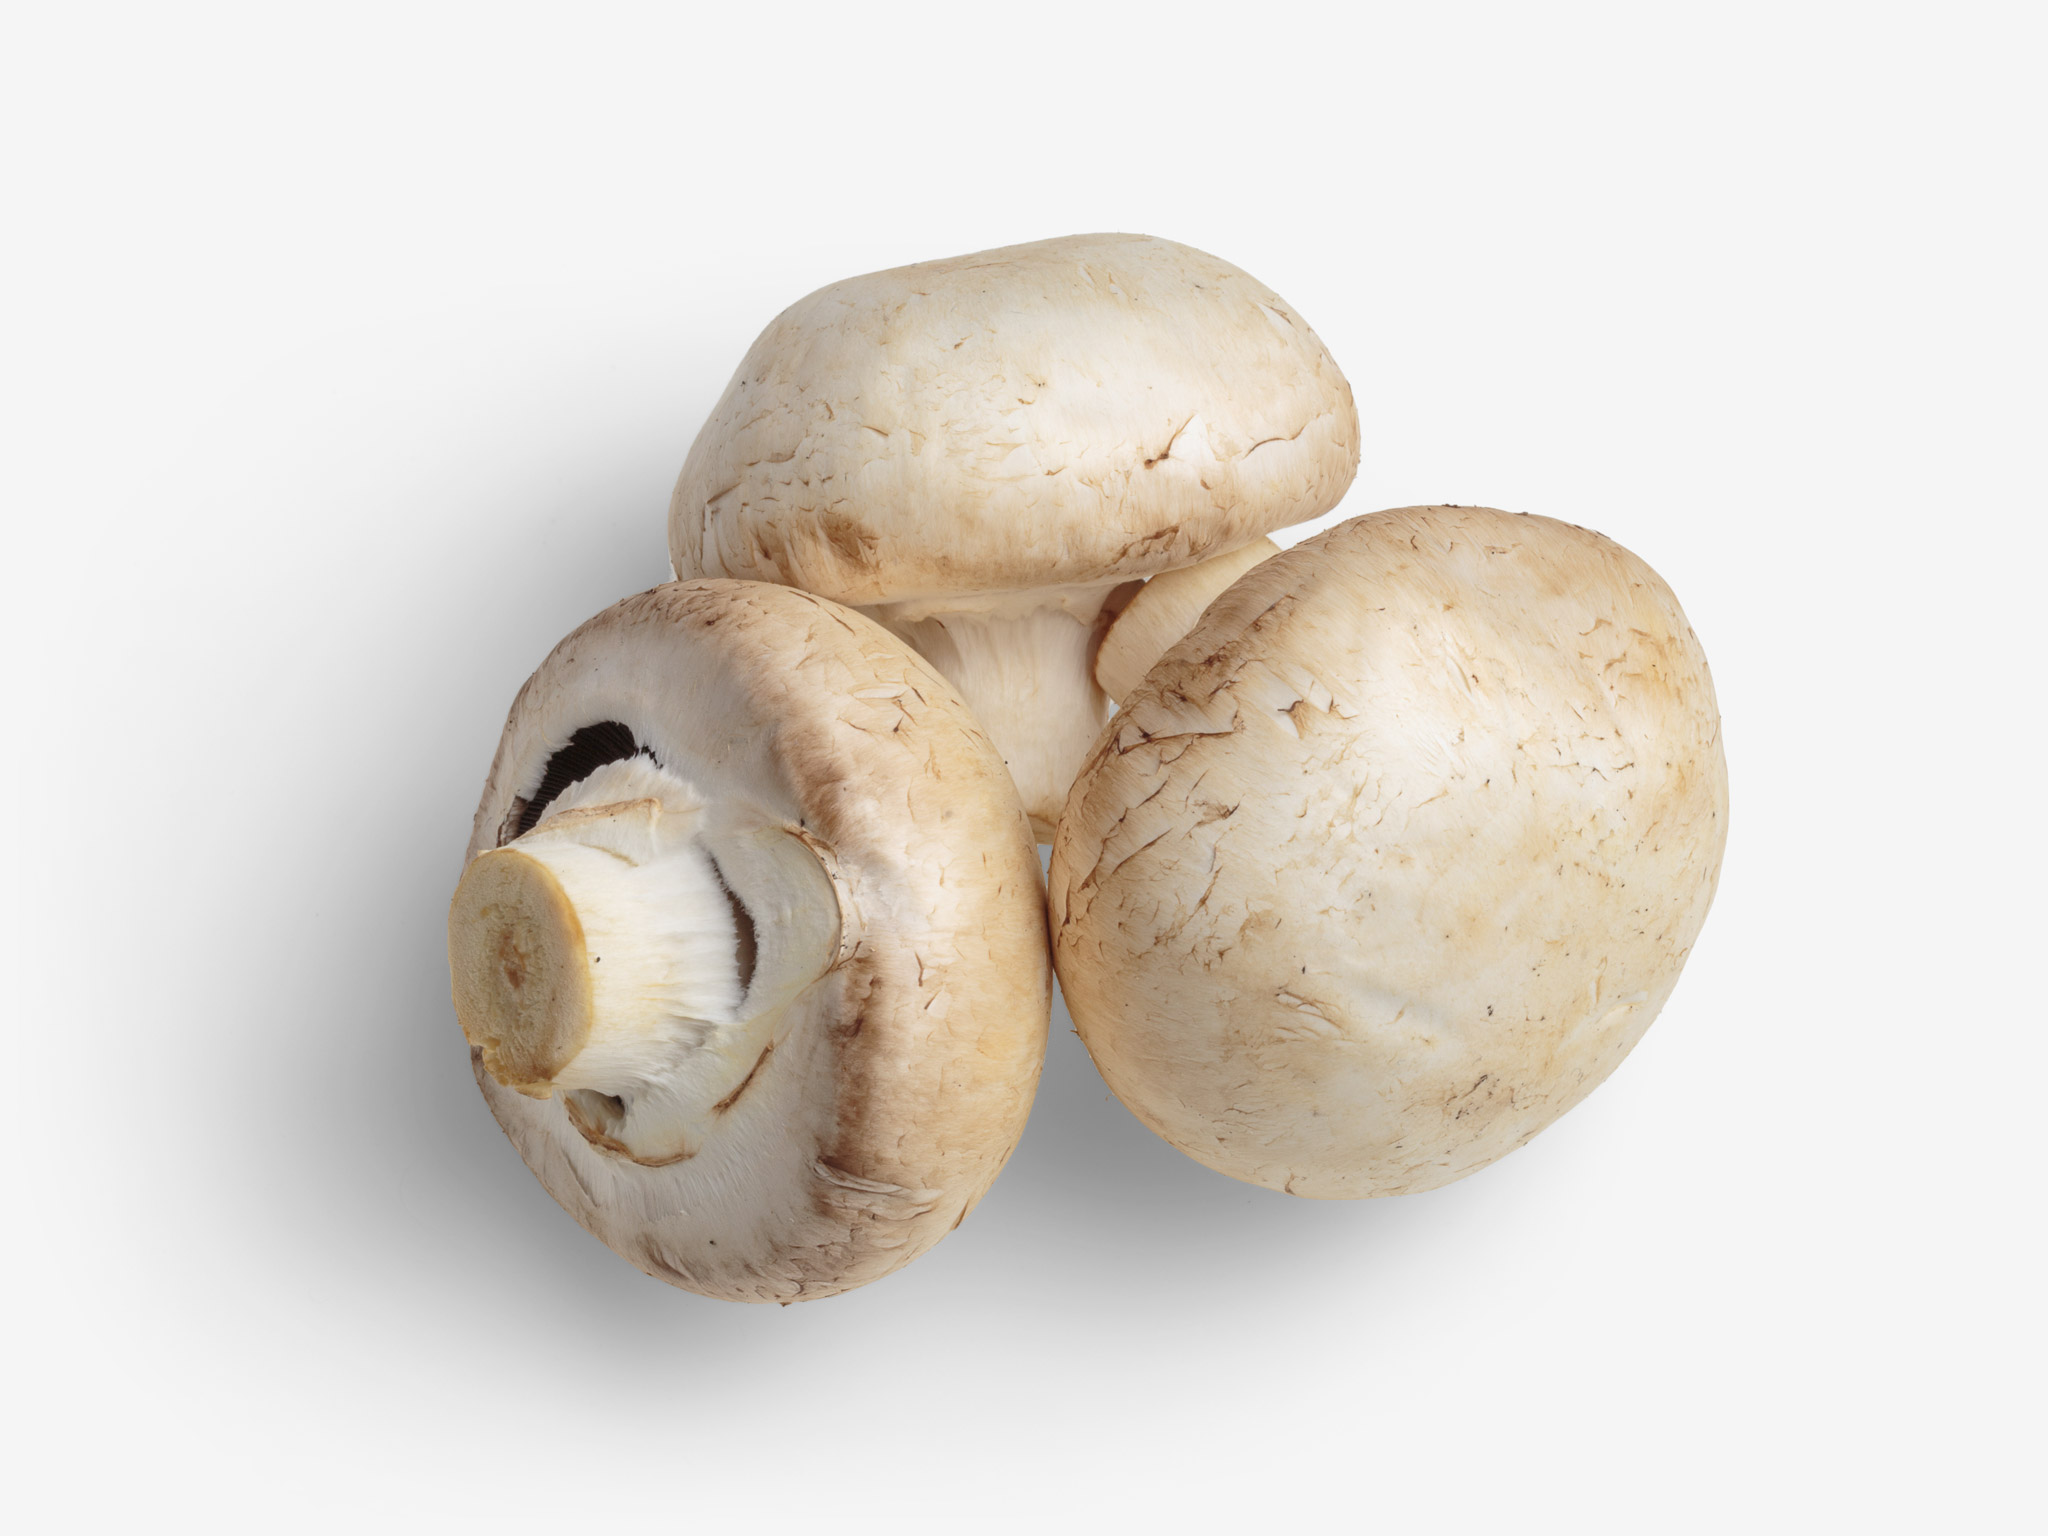 Champignon PSD isolated image